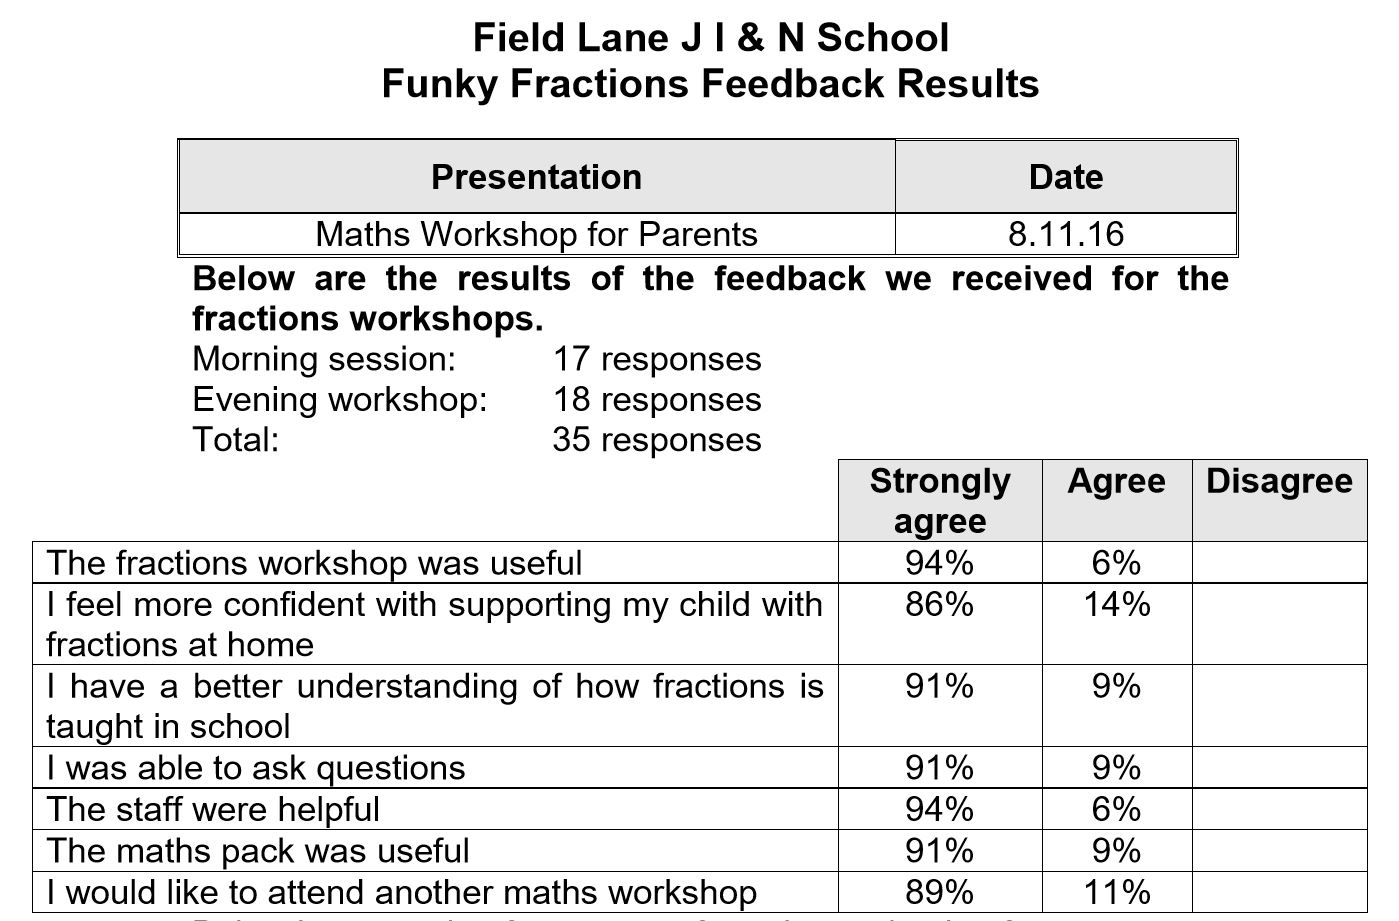 funky fractions feedback results